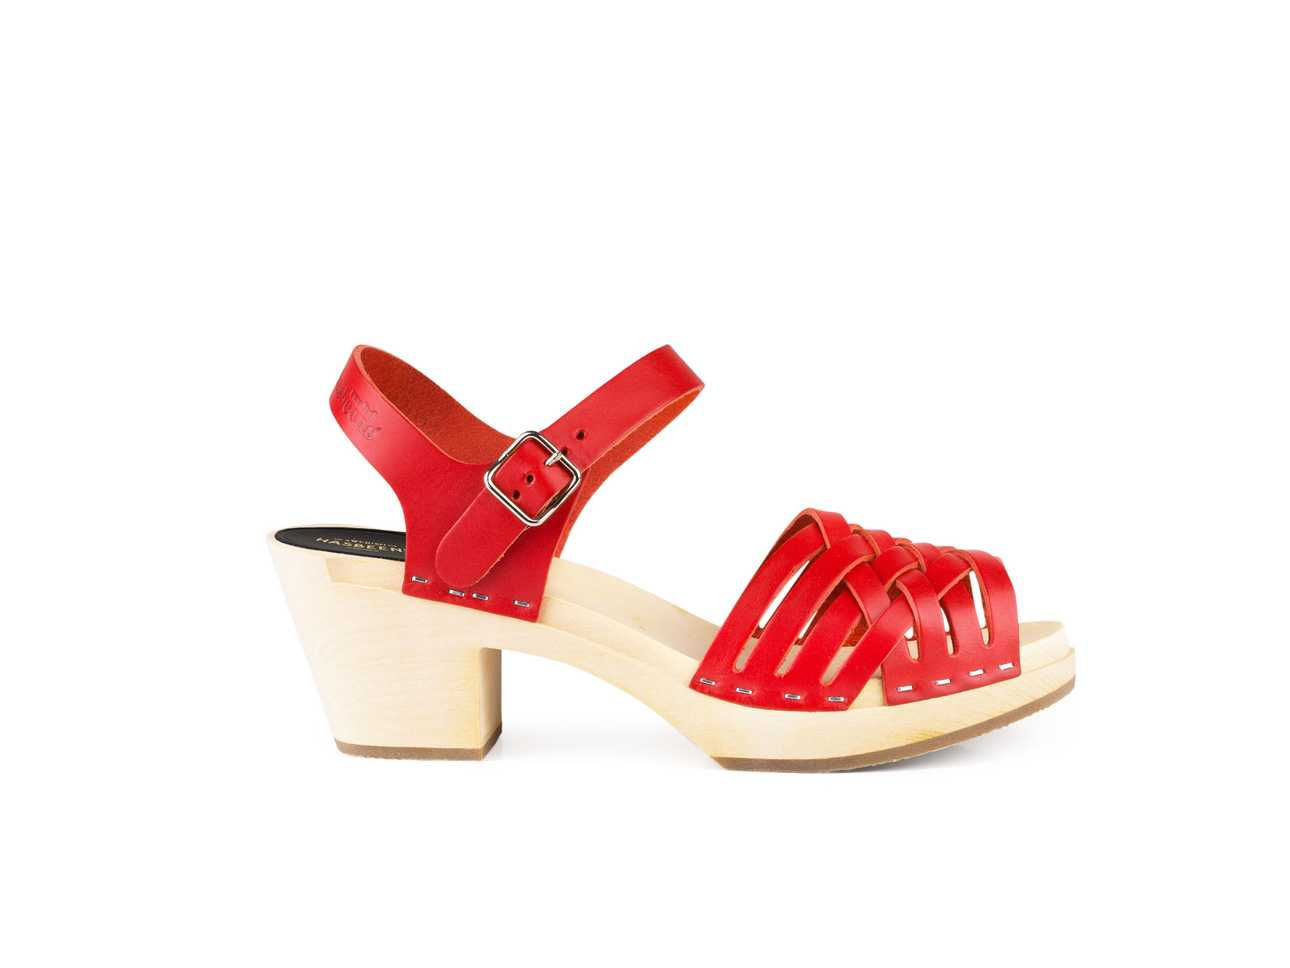 Visit Outlet Explore Swedish Hasbeens Women's Braided High Open Toe Sandals Sale Order Discount Order 4MrI0